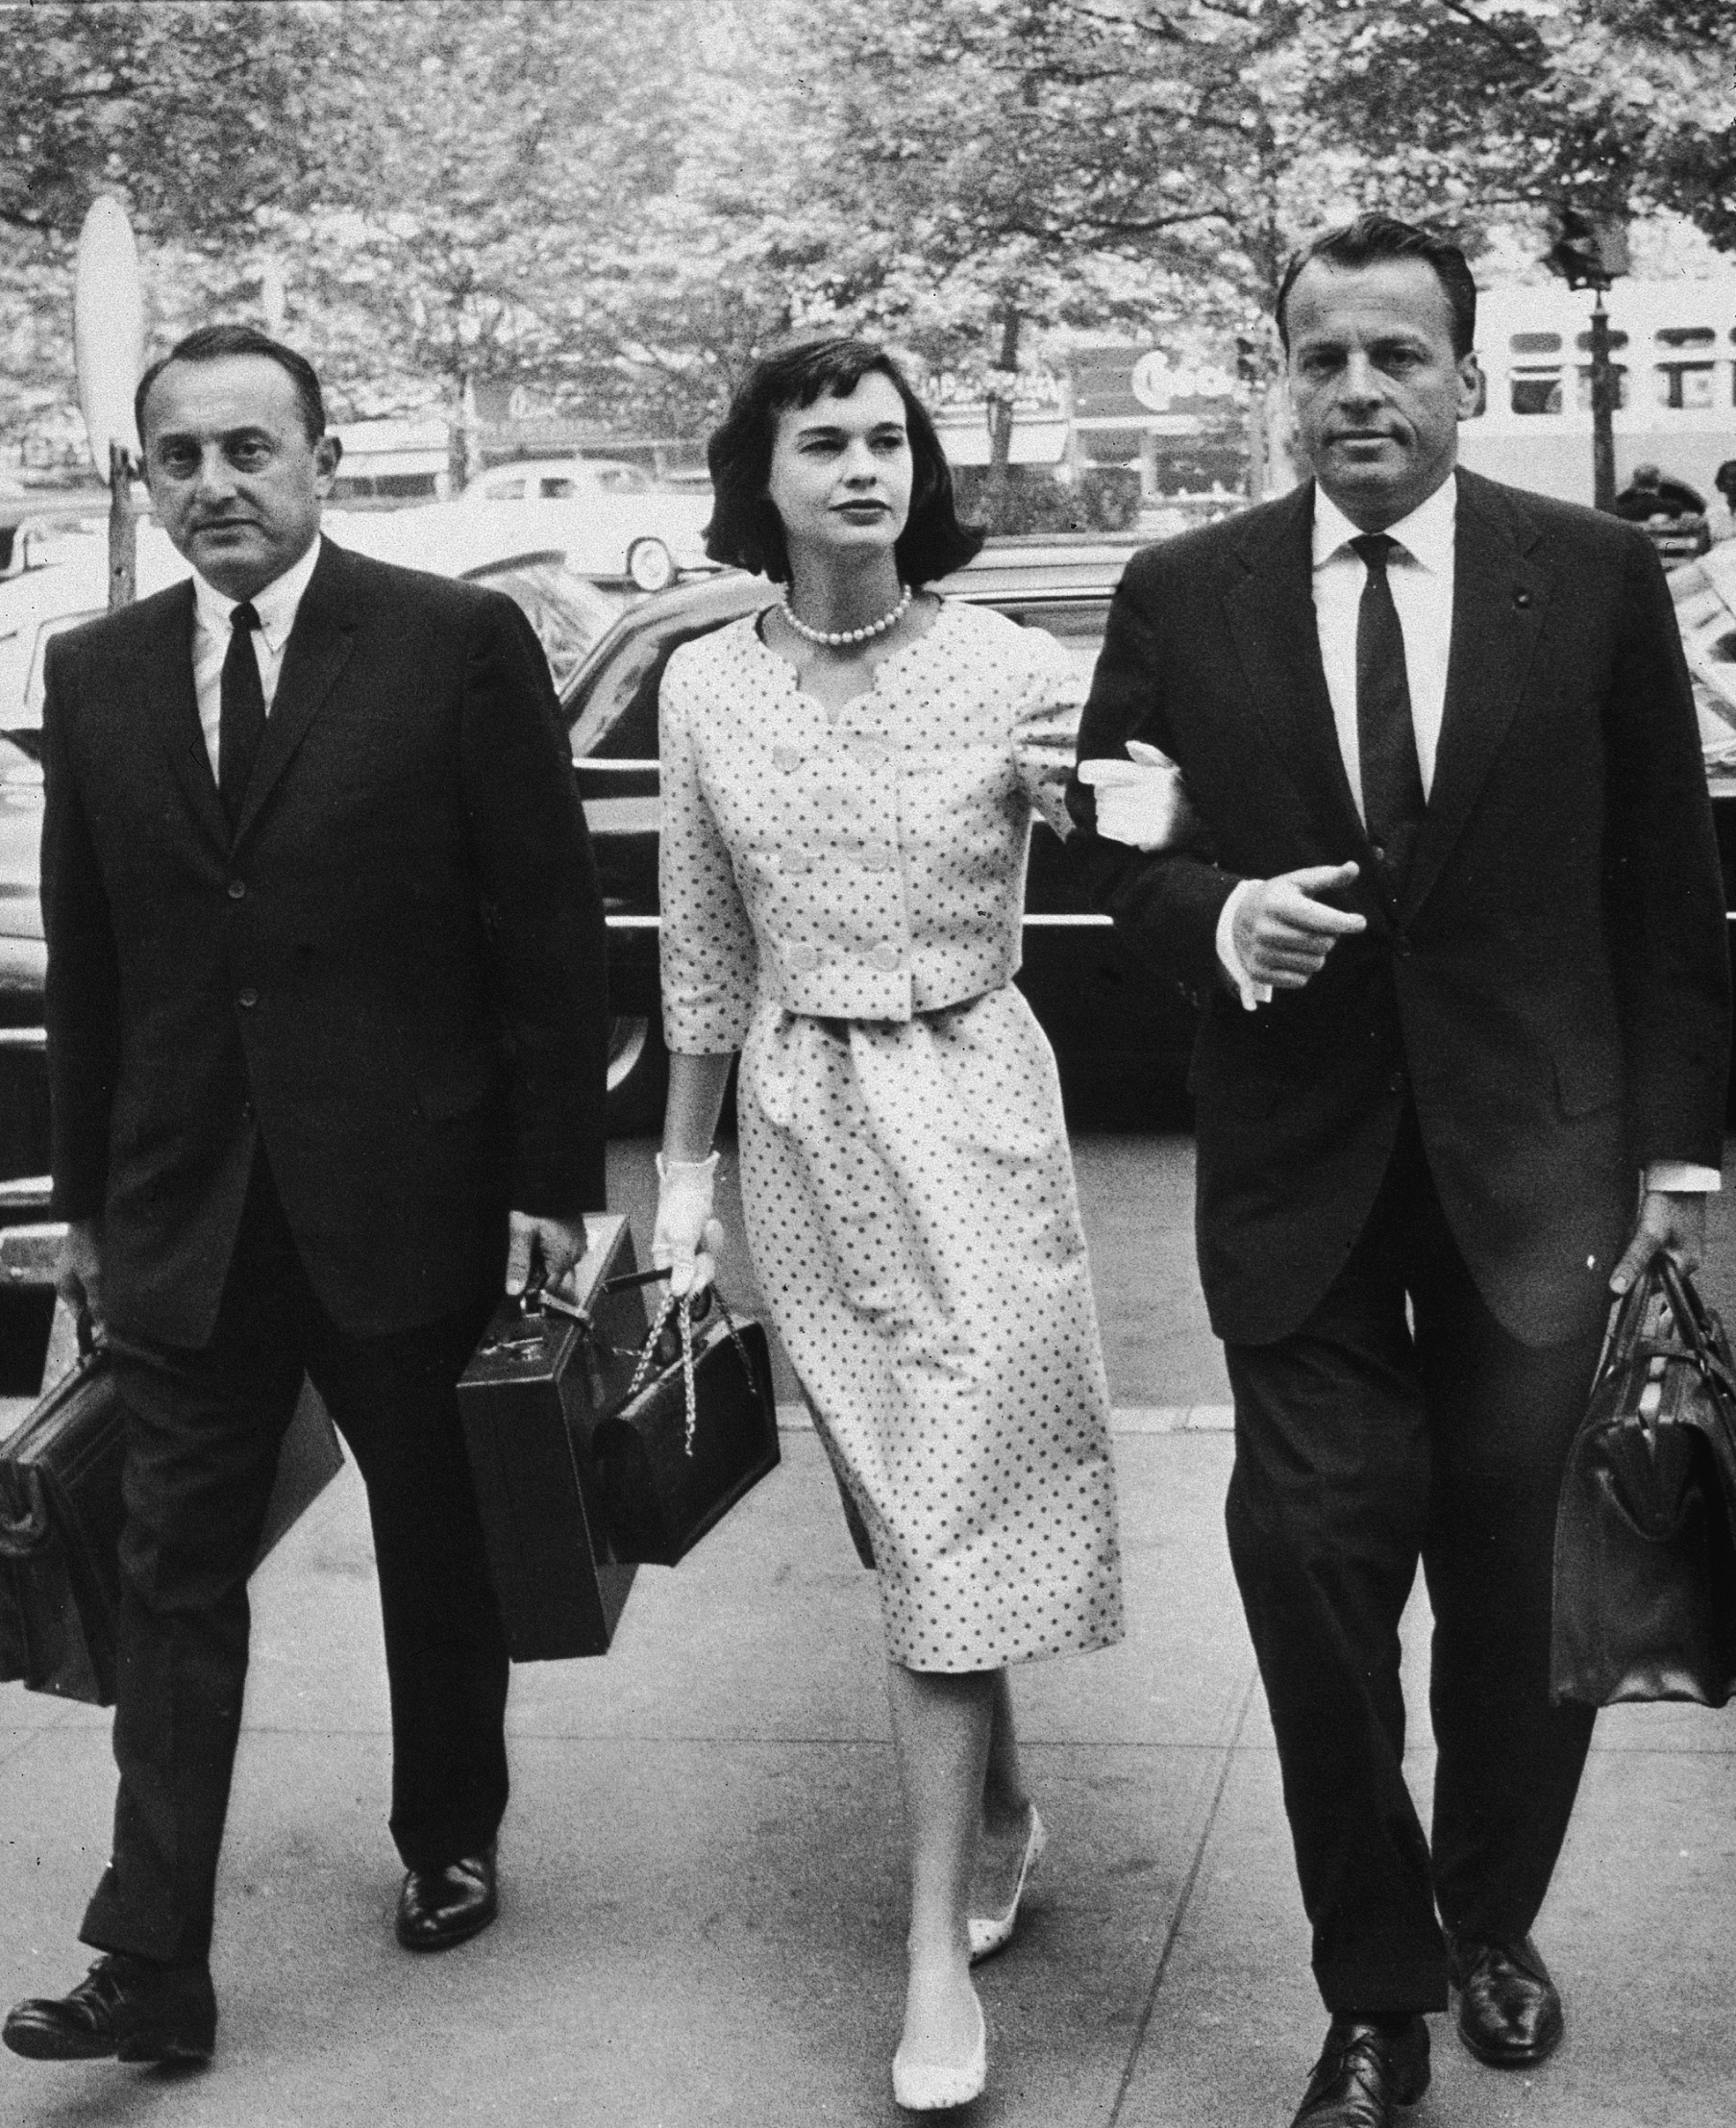 American heiress and socialite Gloria Vanderbilt walks with her attorneys on the way to a custody hearing with her former husband, Leopold Stokowski, June 5, 1959. Vanderbilt wears a polka dot dress with matching jacket and shoes. (Photo by Hulton Archive/Getty Images)